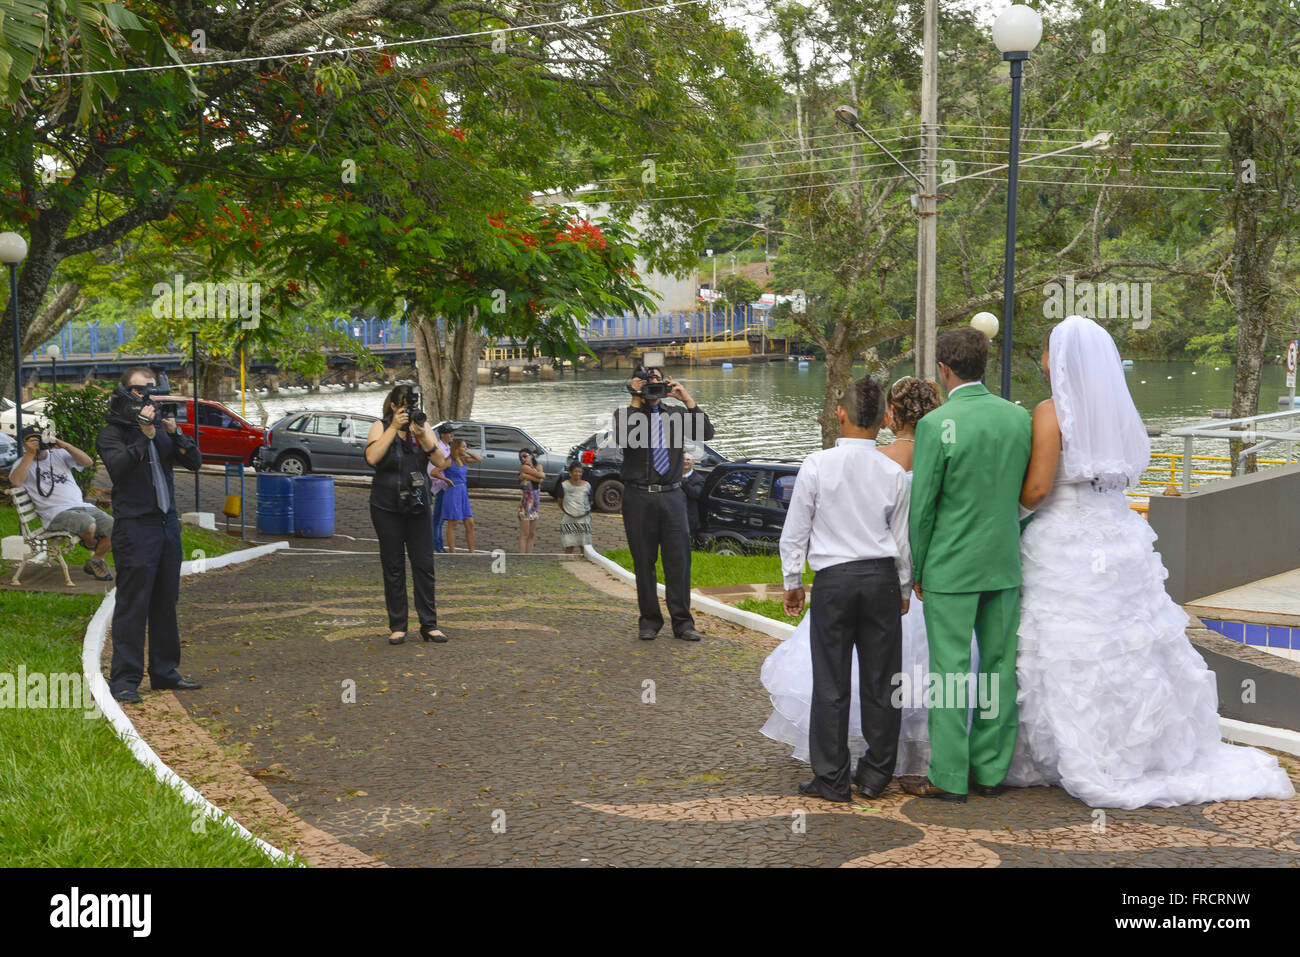 Newlyweds being photographed at Praça Benedito Silveira Camargo - Stock Image